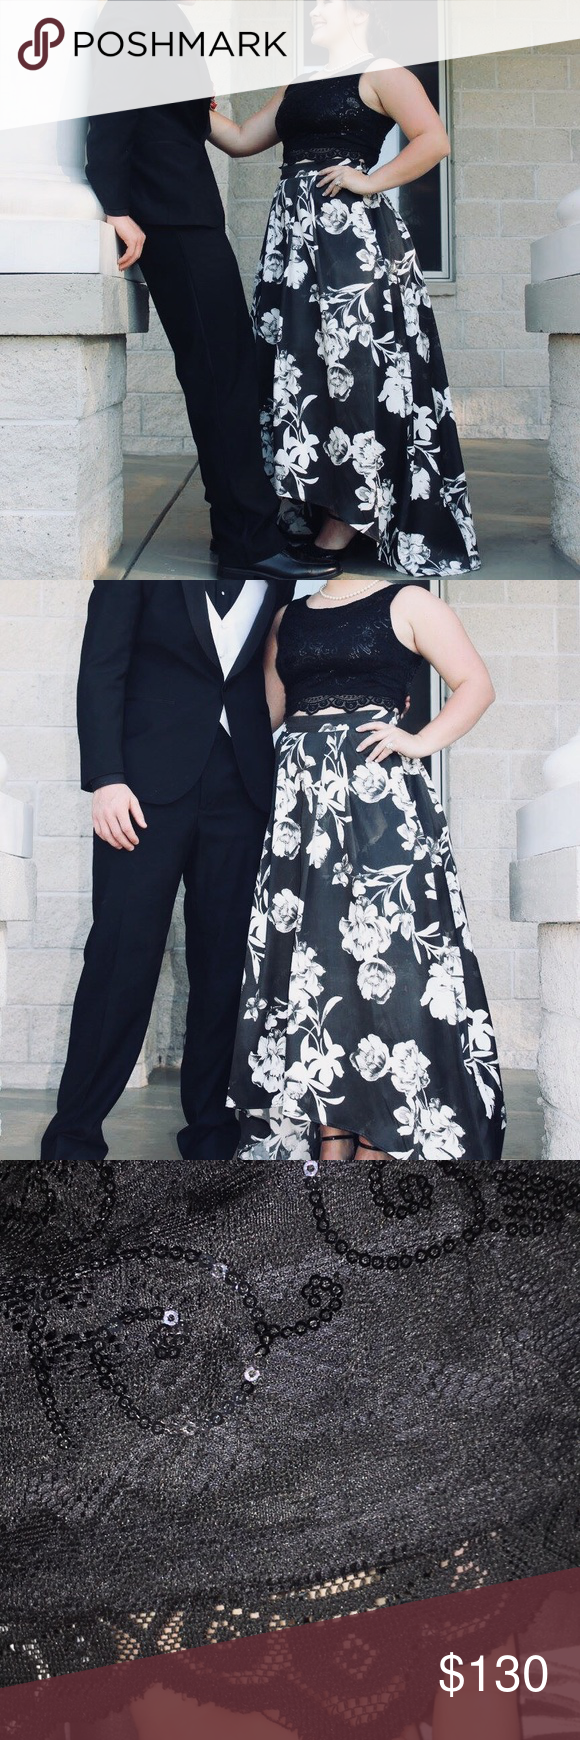 Black And White Floral 2 Piece Prom Dress Piece Prom Dress 2 Piece Prom Dress Prom Dresses Two Piece [ 1740 x 580 Pixel ]